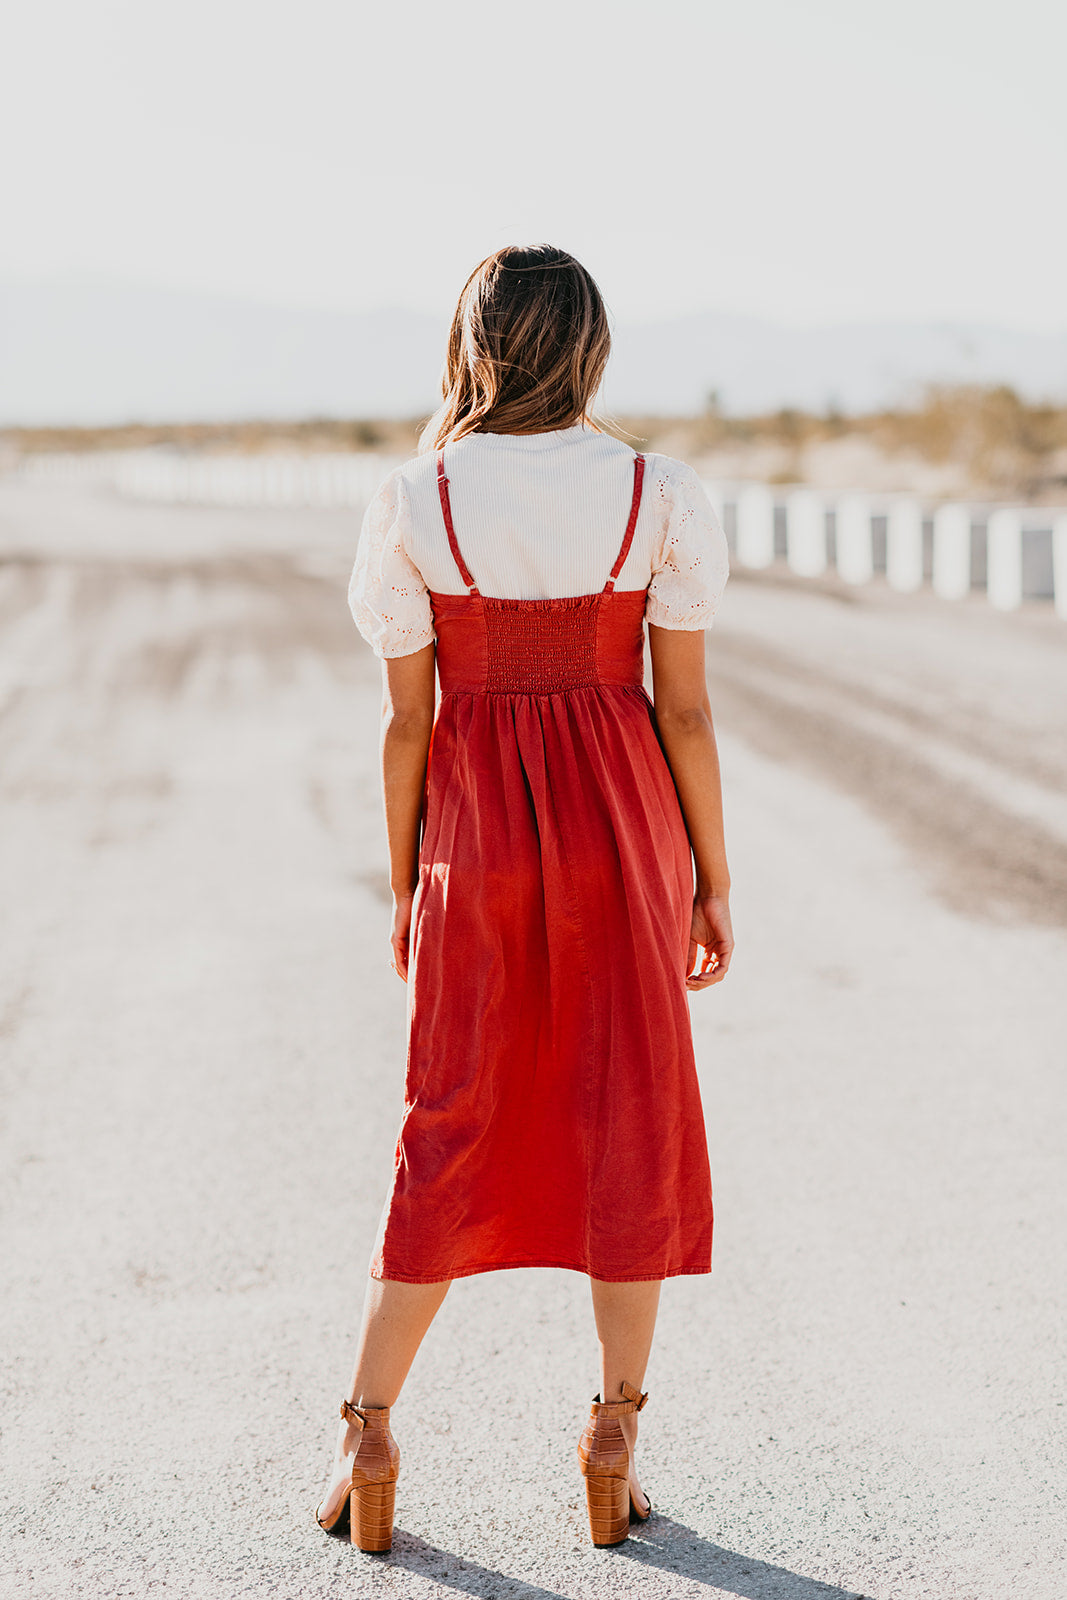 THE CHENEY SLEEVELESS DRESS IN RUST